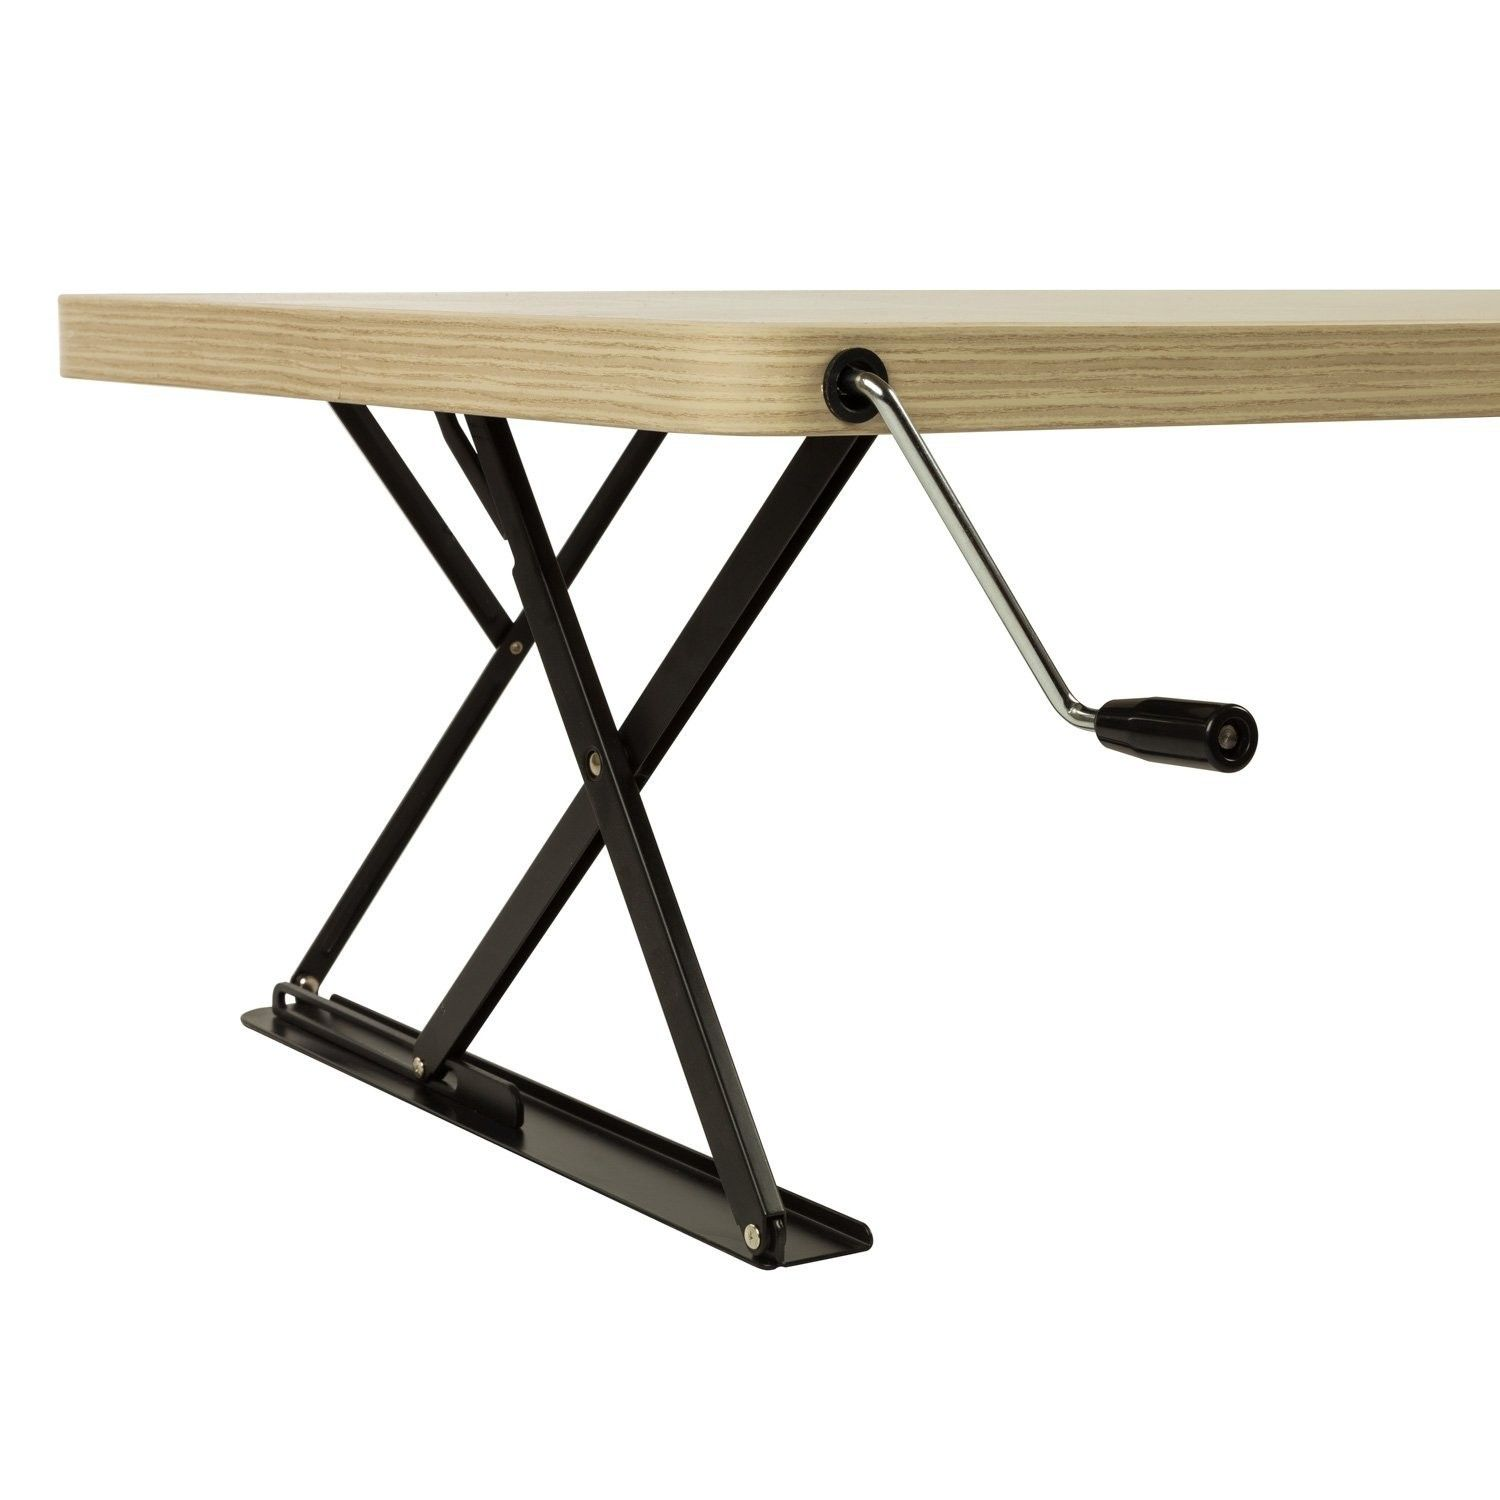 Halter Height Adjustable Desk Adjustable Height Desk Adjustable Desk Adjustable Height Table